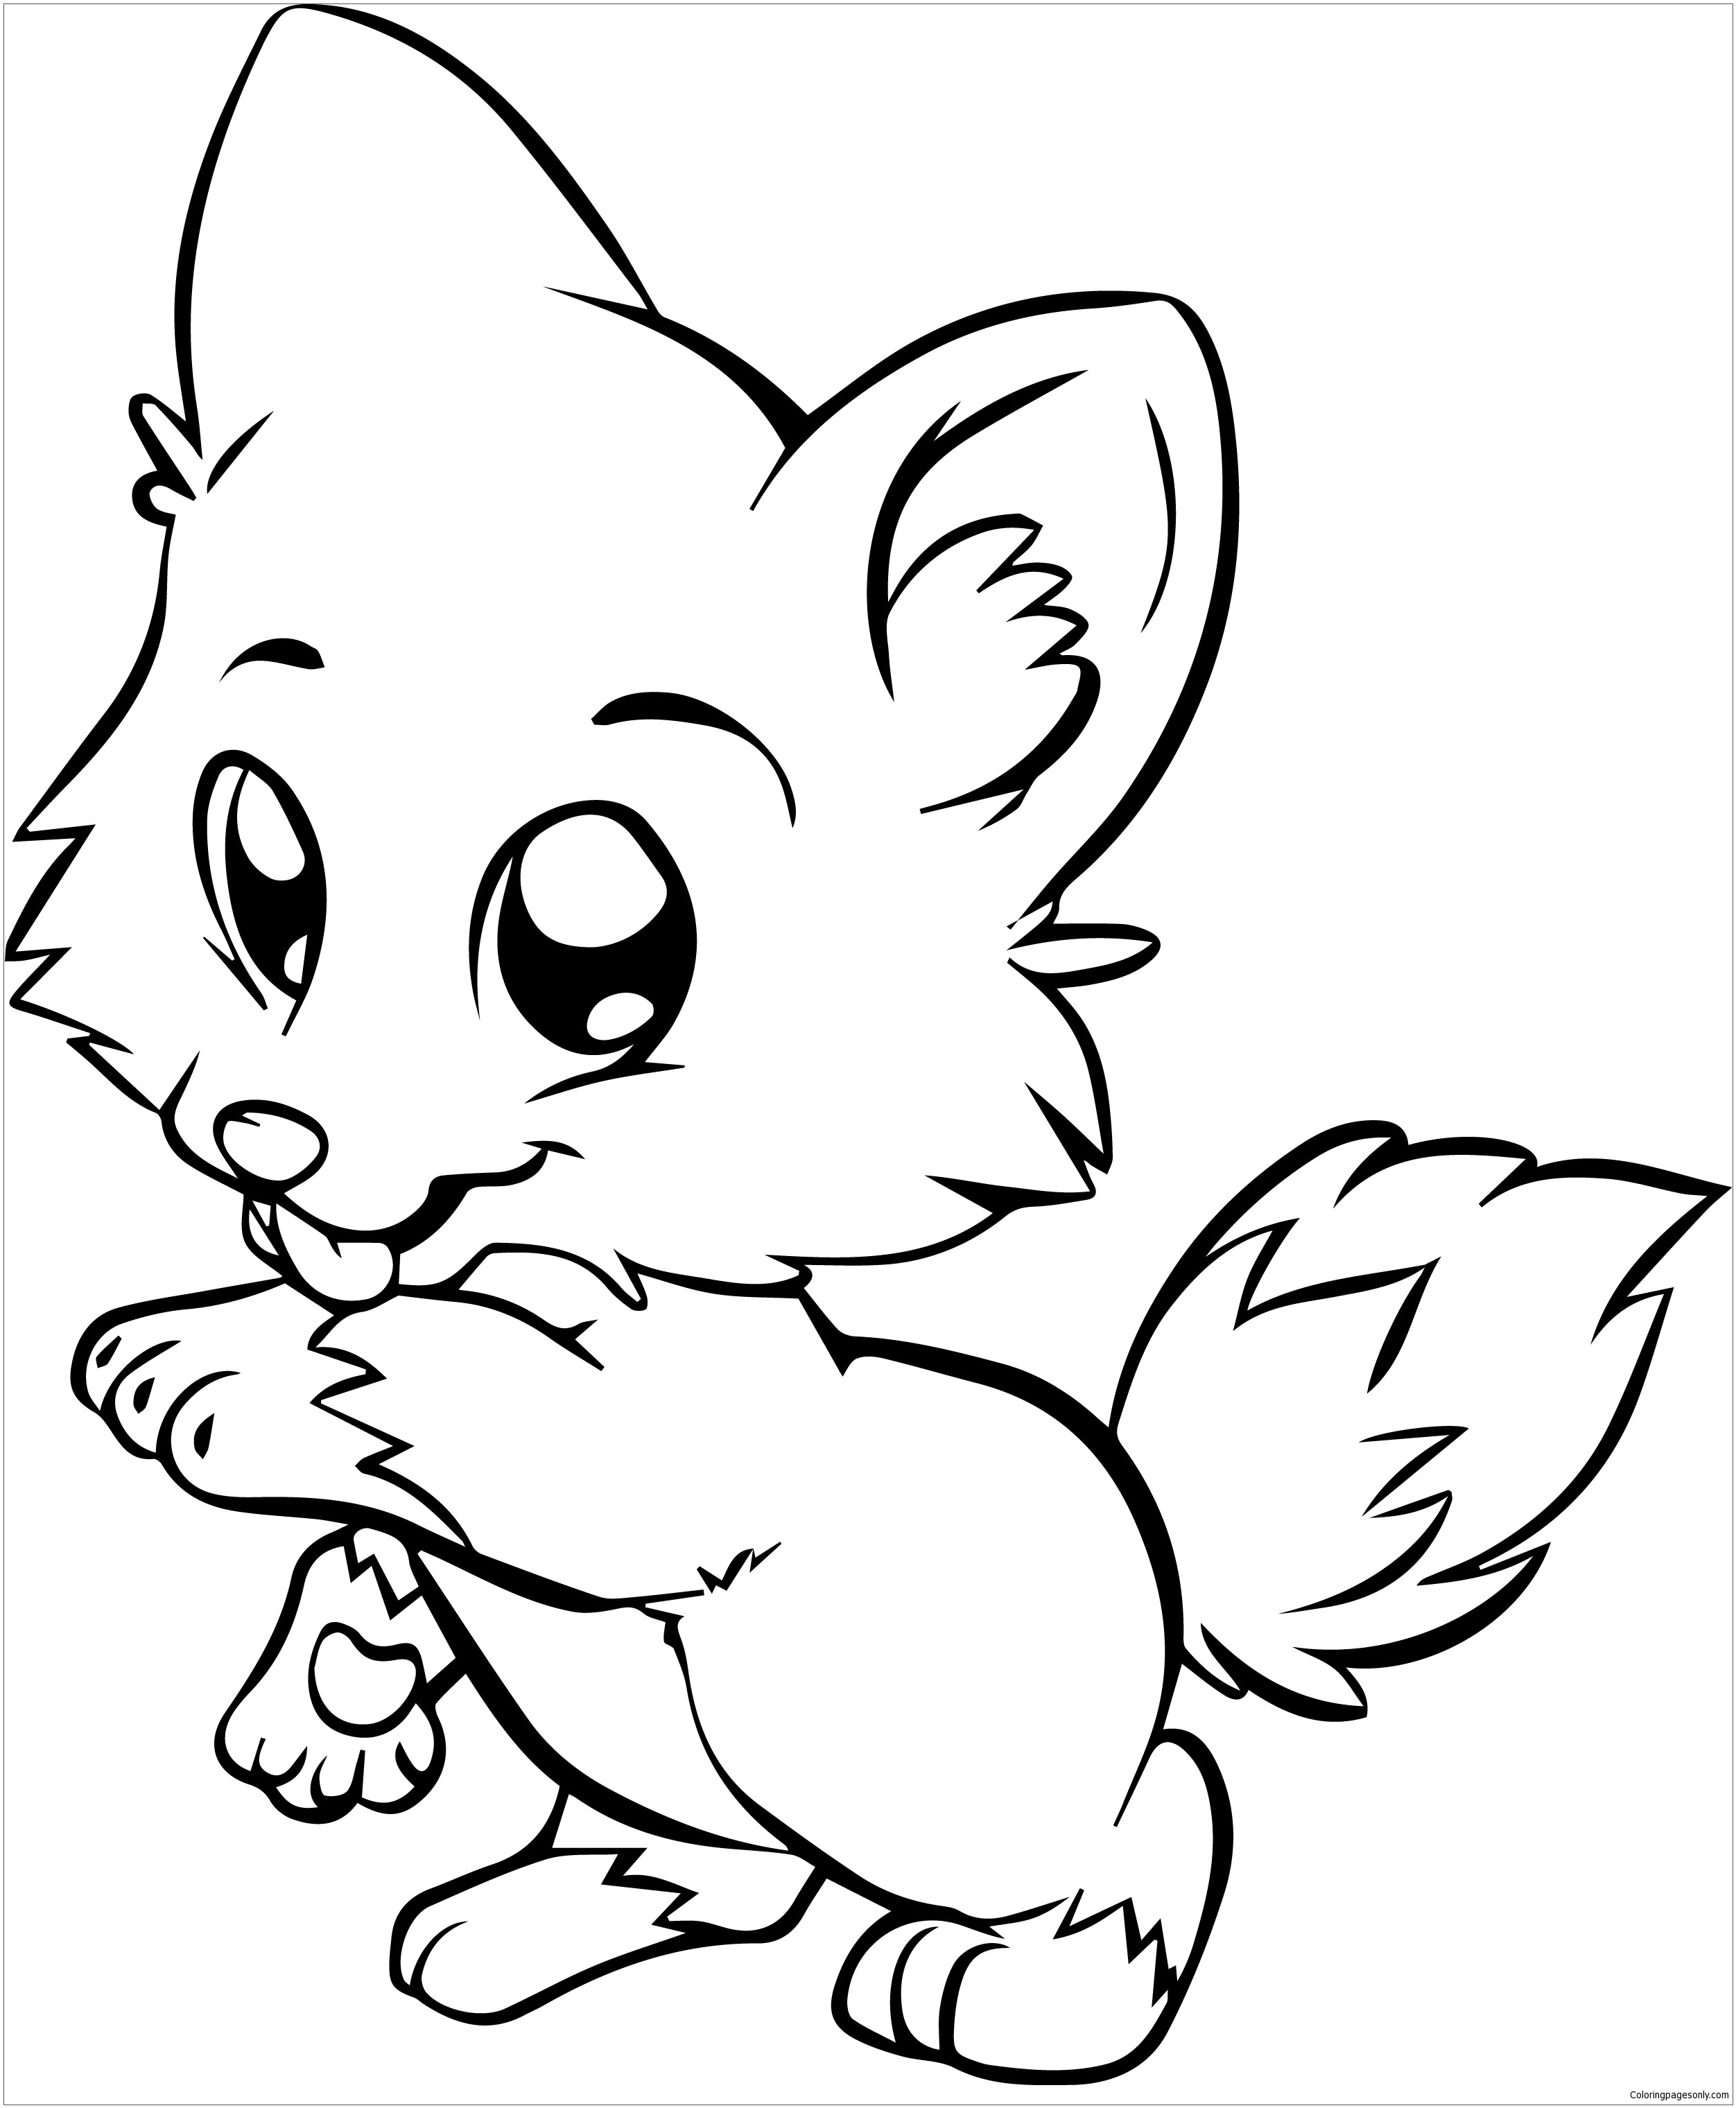 baby dog coloring pages puppy drawing images at getdrawings free download baby dog pages coloring